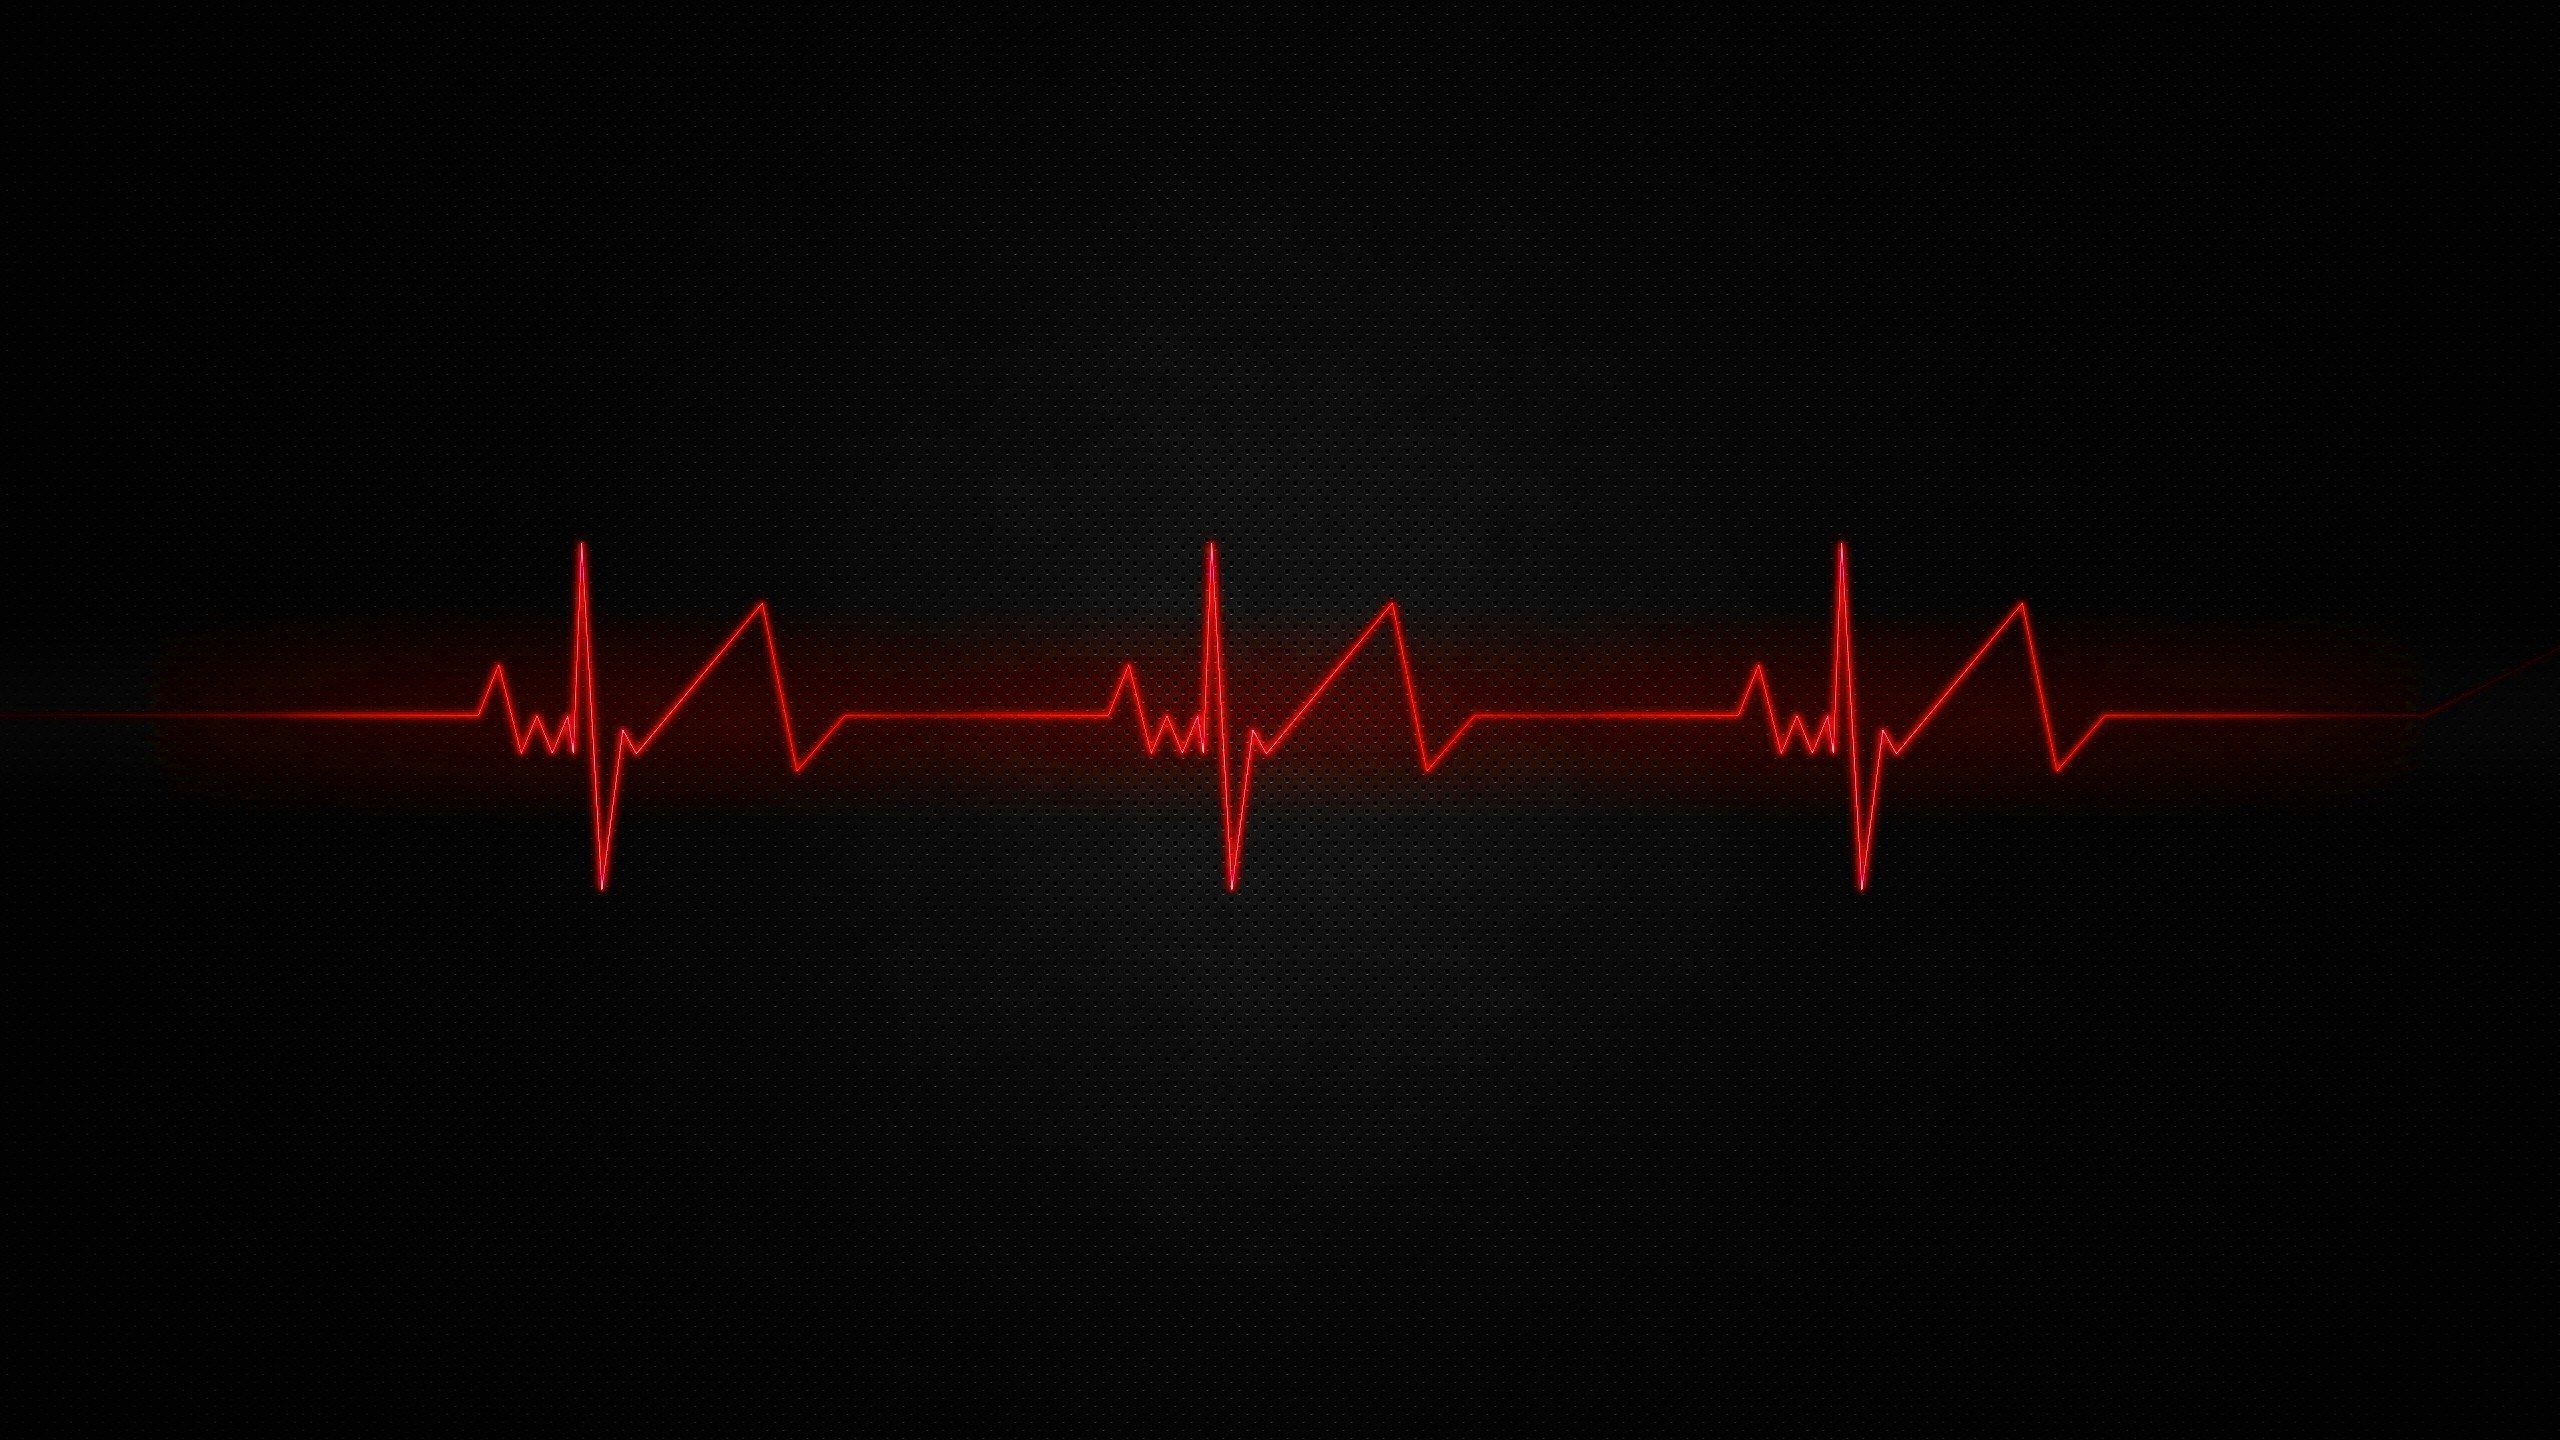 2560x1600 Black And Red Heart Wallpaper Background